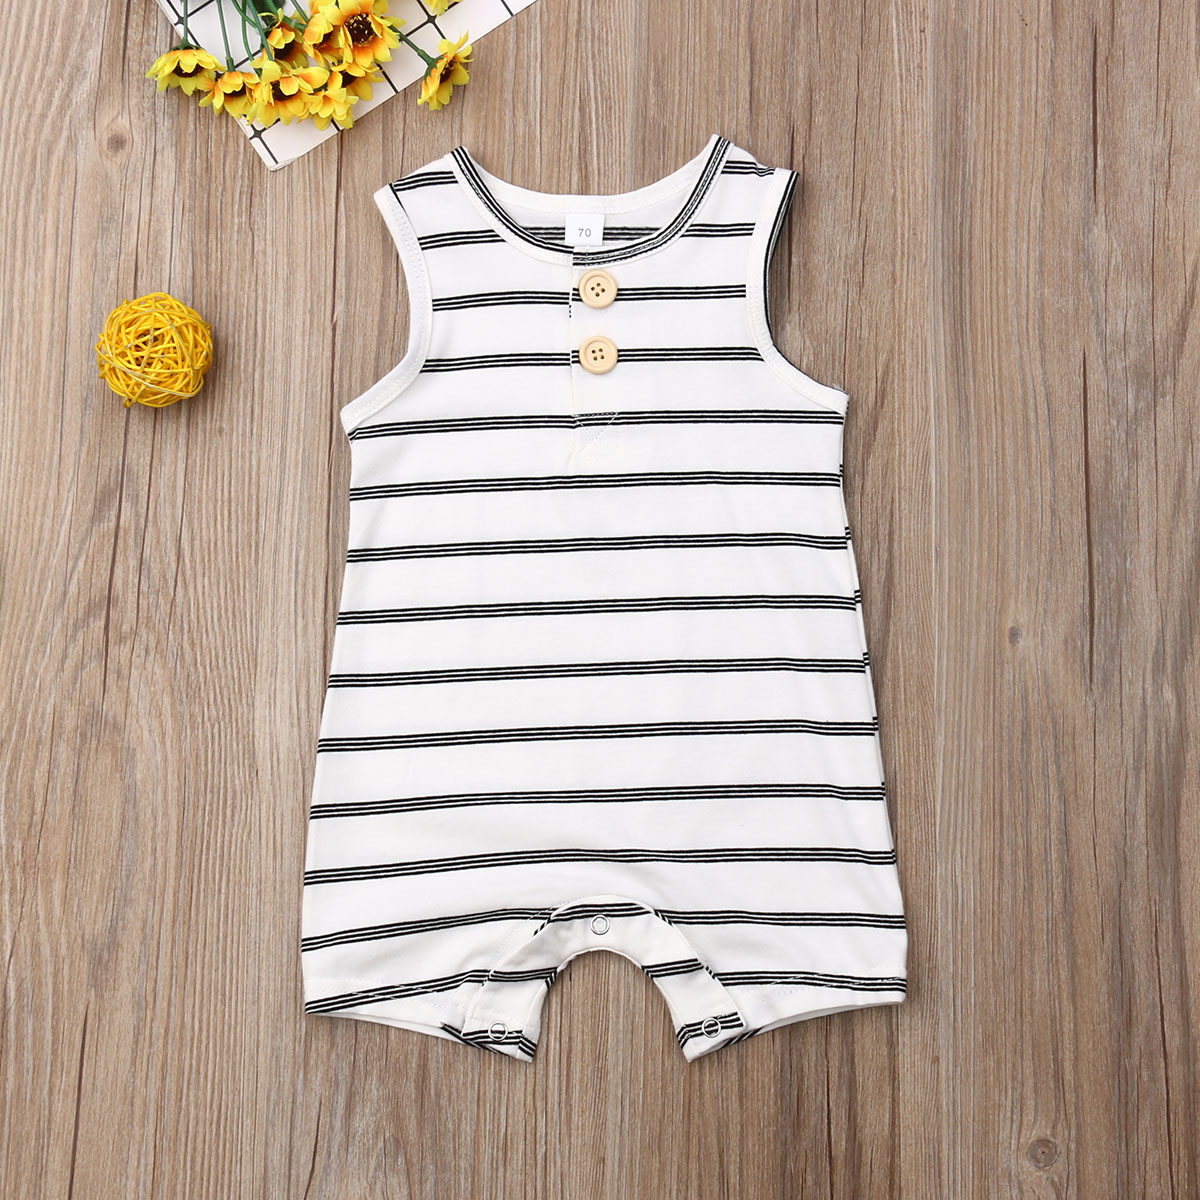 Pudcoco Newborn Baby Boy Girl Clothes Sleeveless Striped Cotton Romper Jumpsuit One-Piece Outfit Sunsuit Playsuit Clothes